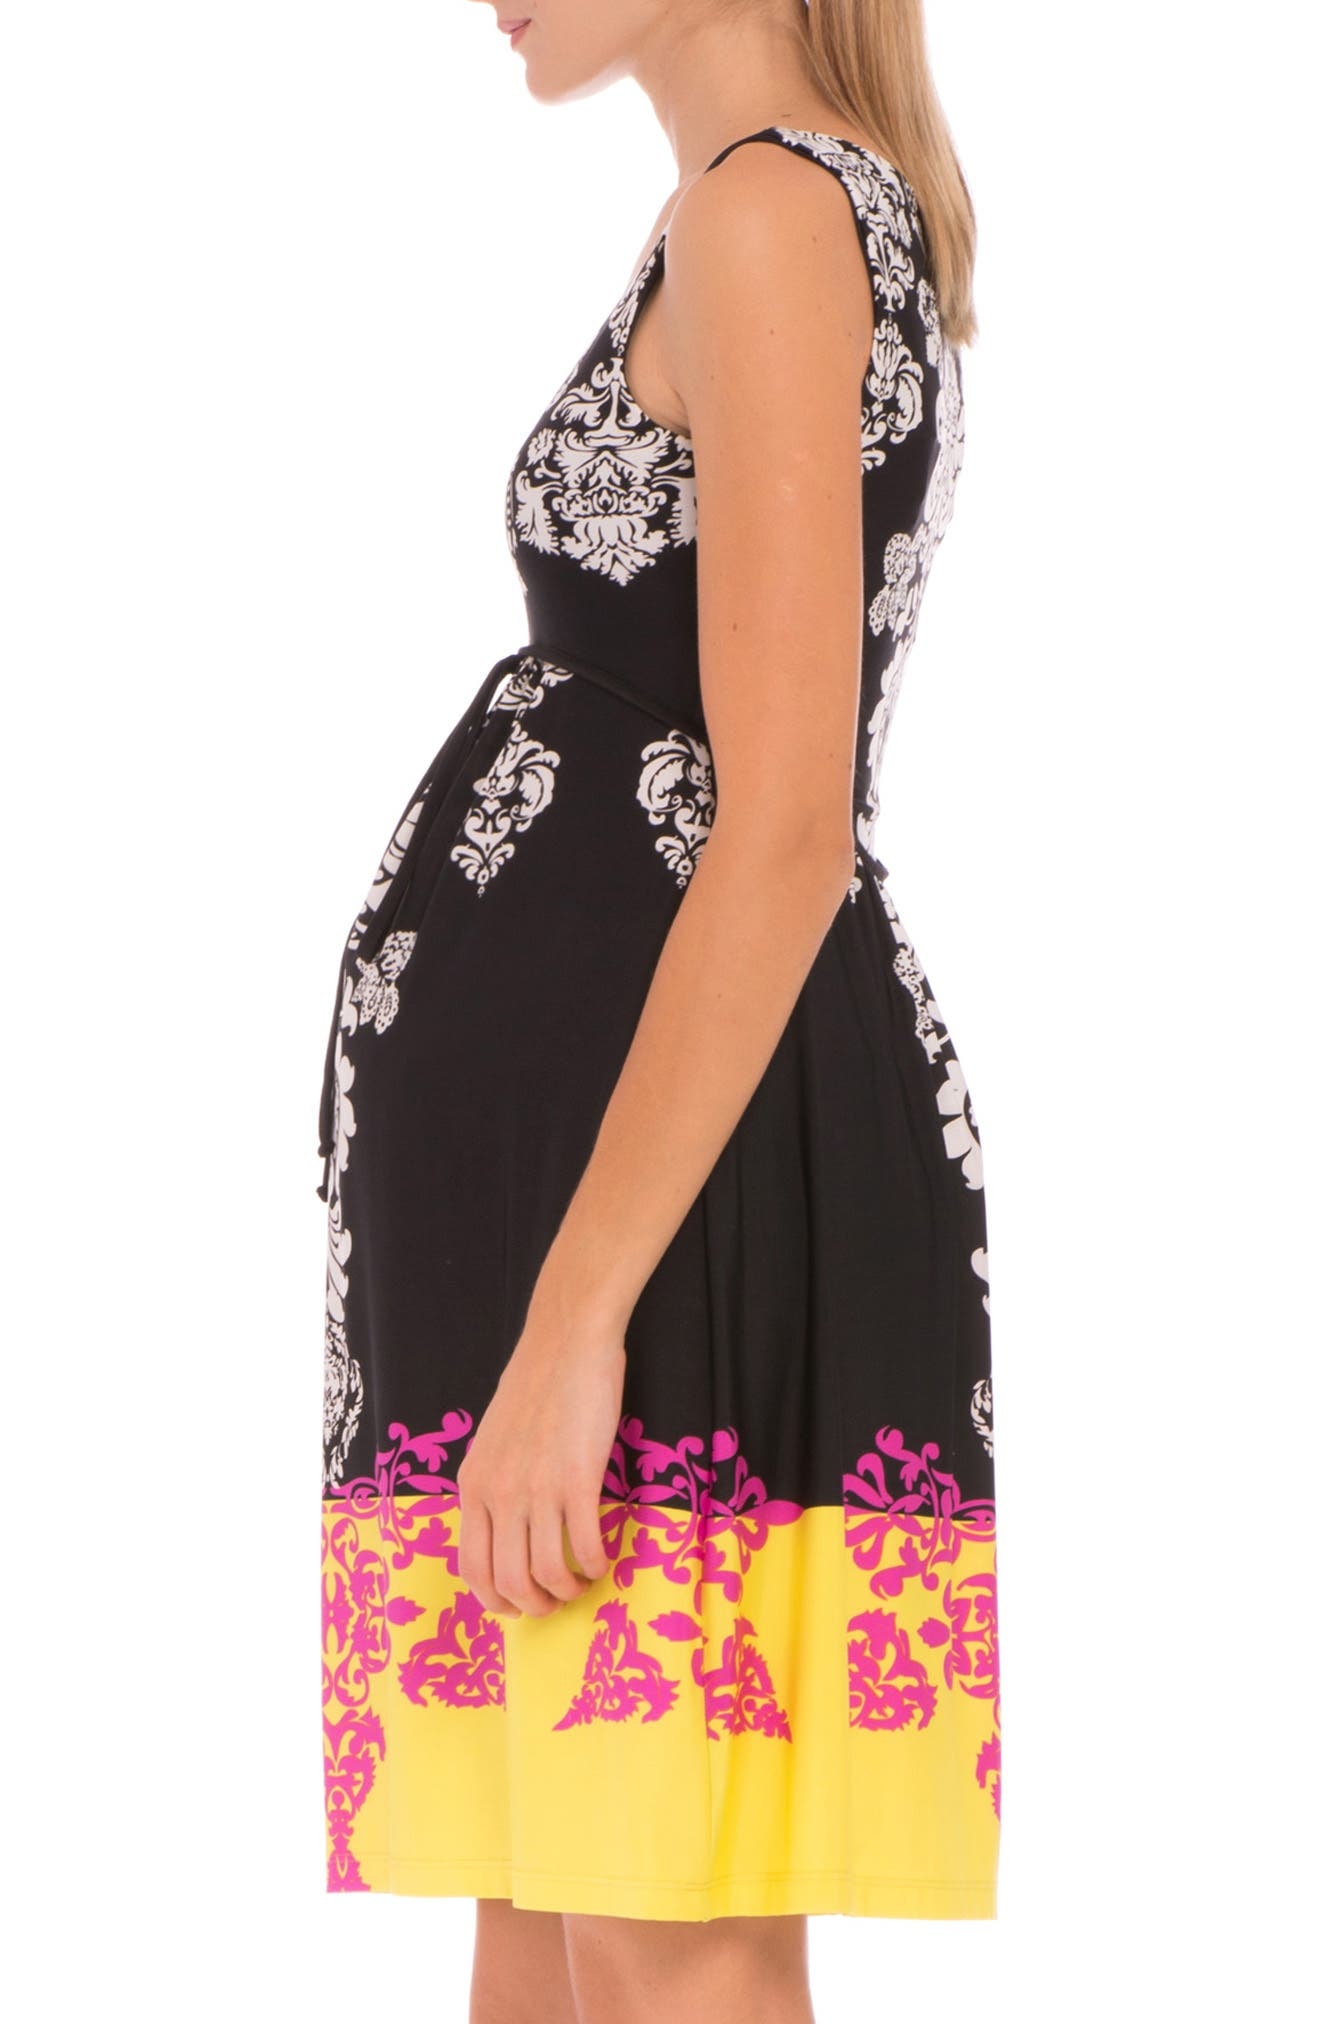 'Eloise' Graphic Maternity Dress,                             Alternate thumbnail 2, color,                             BLACK/ YELLOW PRINT